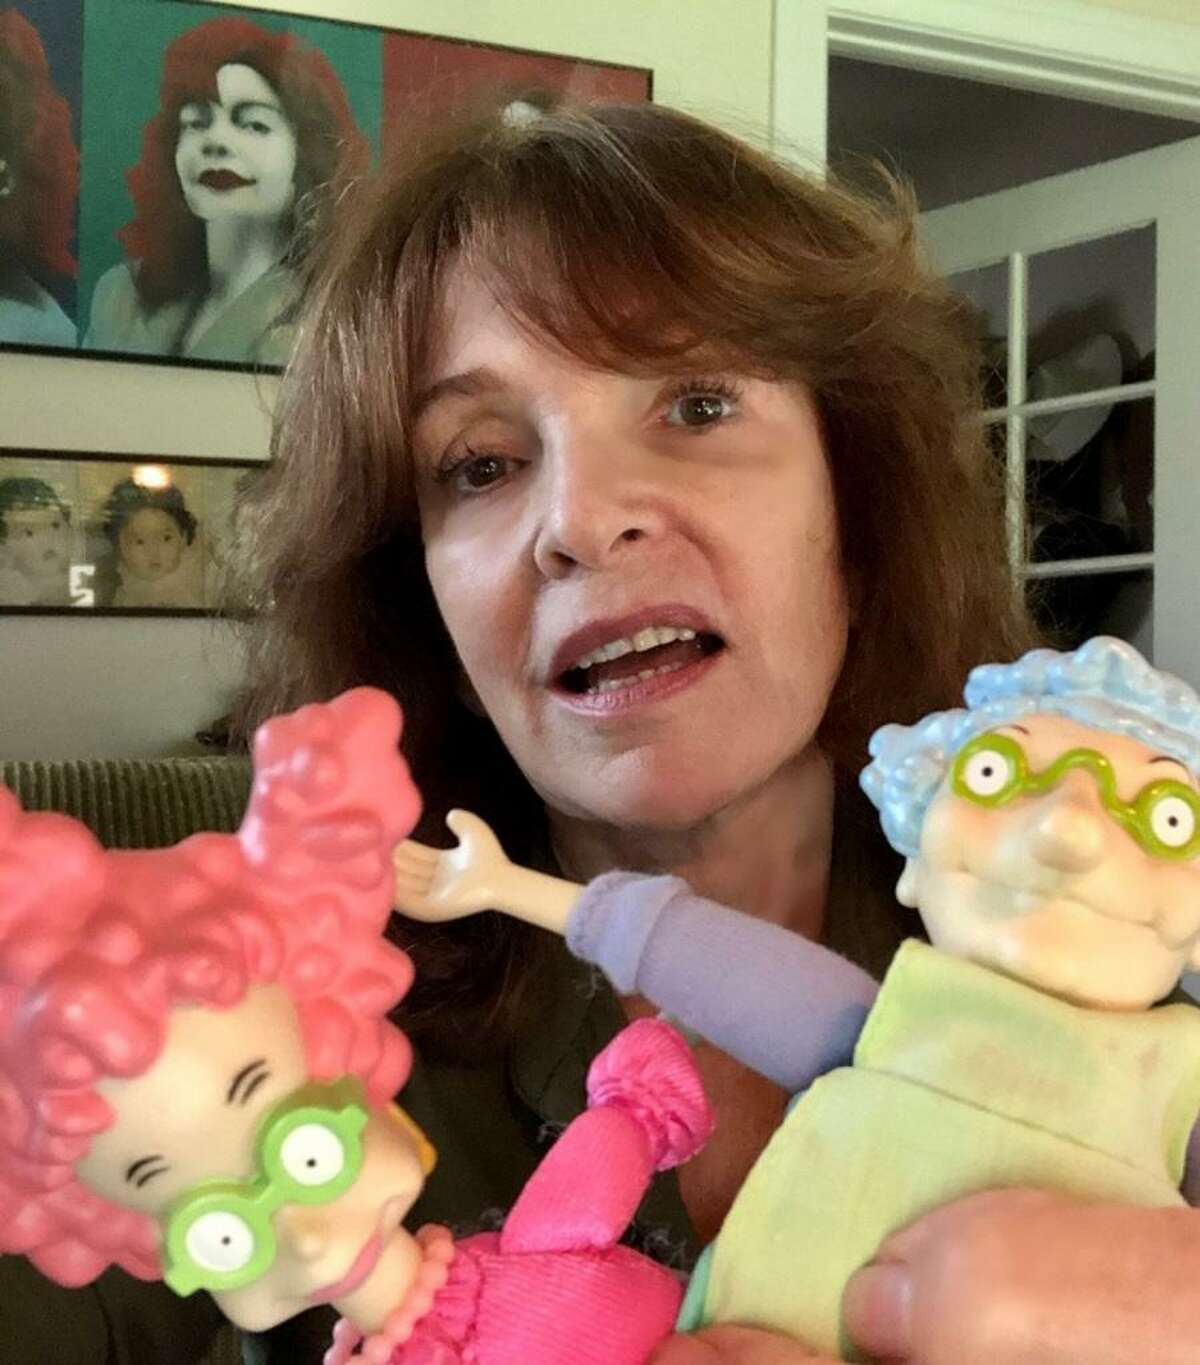 Actress Melanie Chartoff, 71, of Los Angeles, holds two Rugrats characters that she helped make famous with her voice, Didi Pickles on the left and Didi's mother, Minka, on the right.